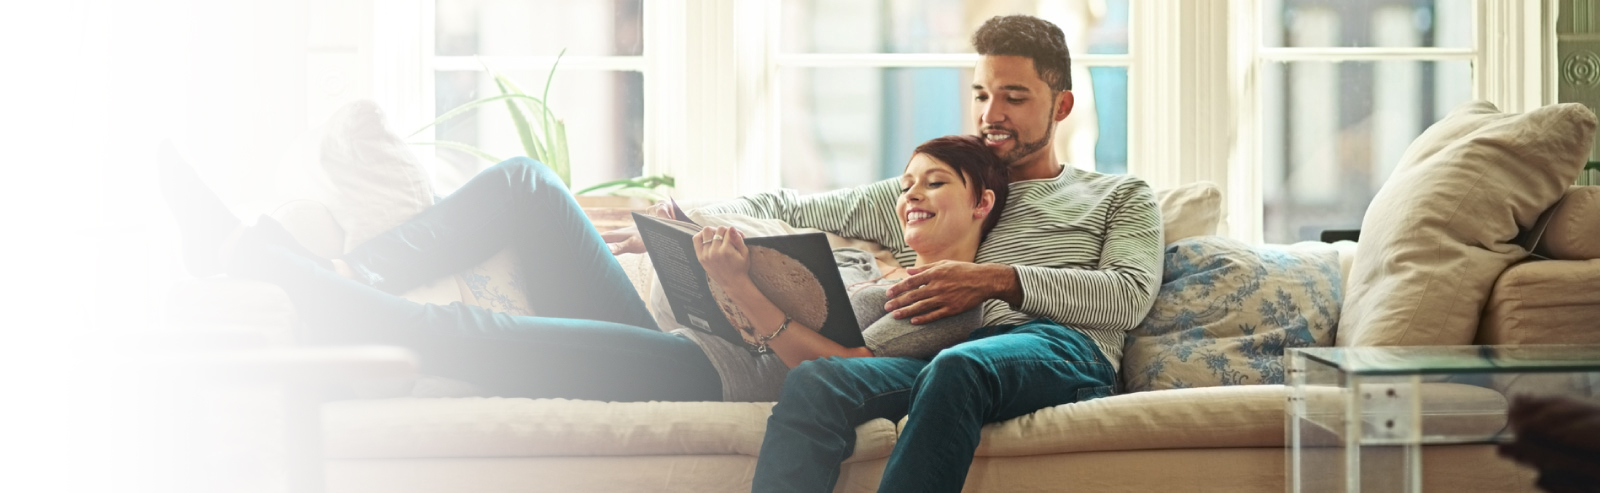 Man and woman couple laying on couch reading a book together.